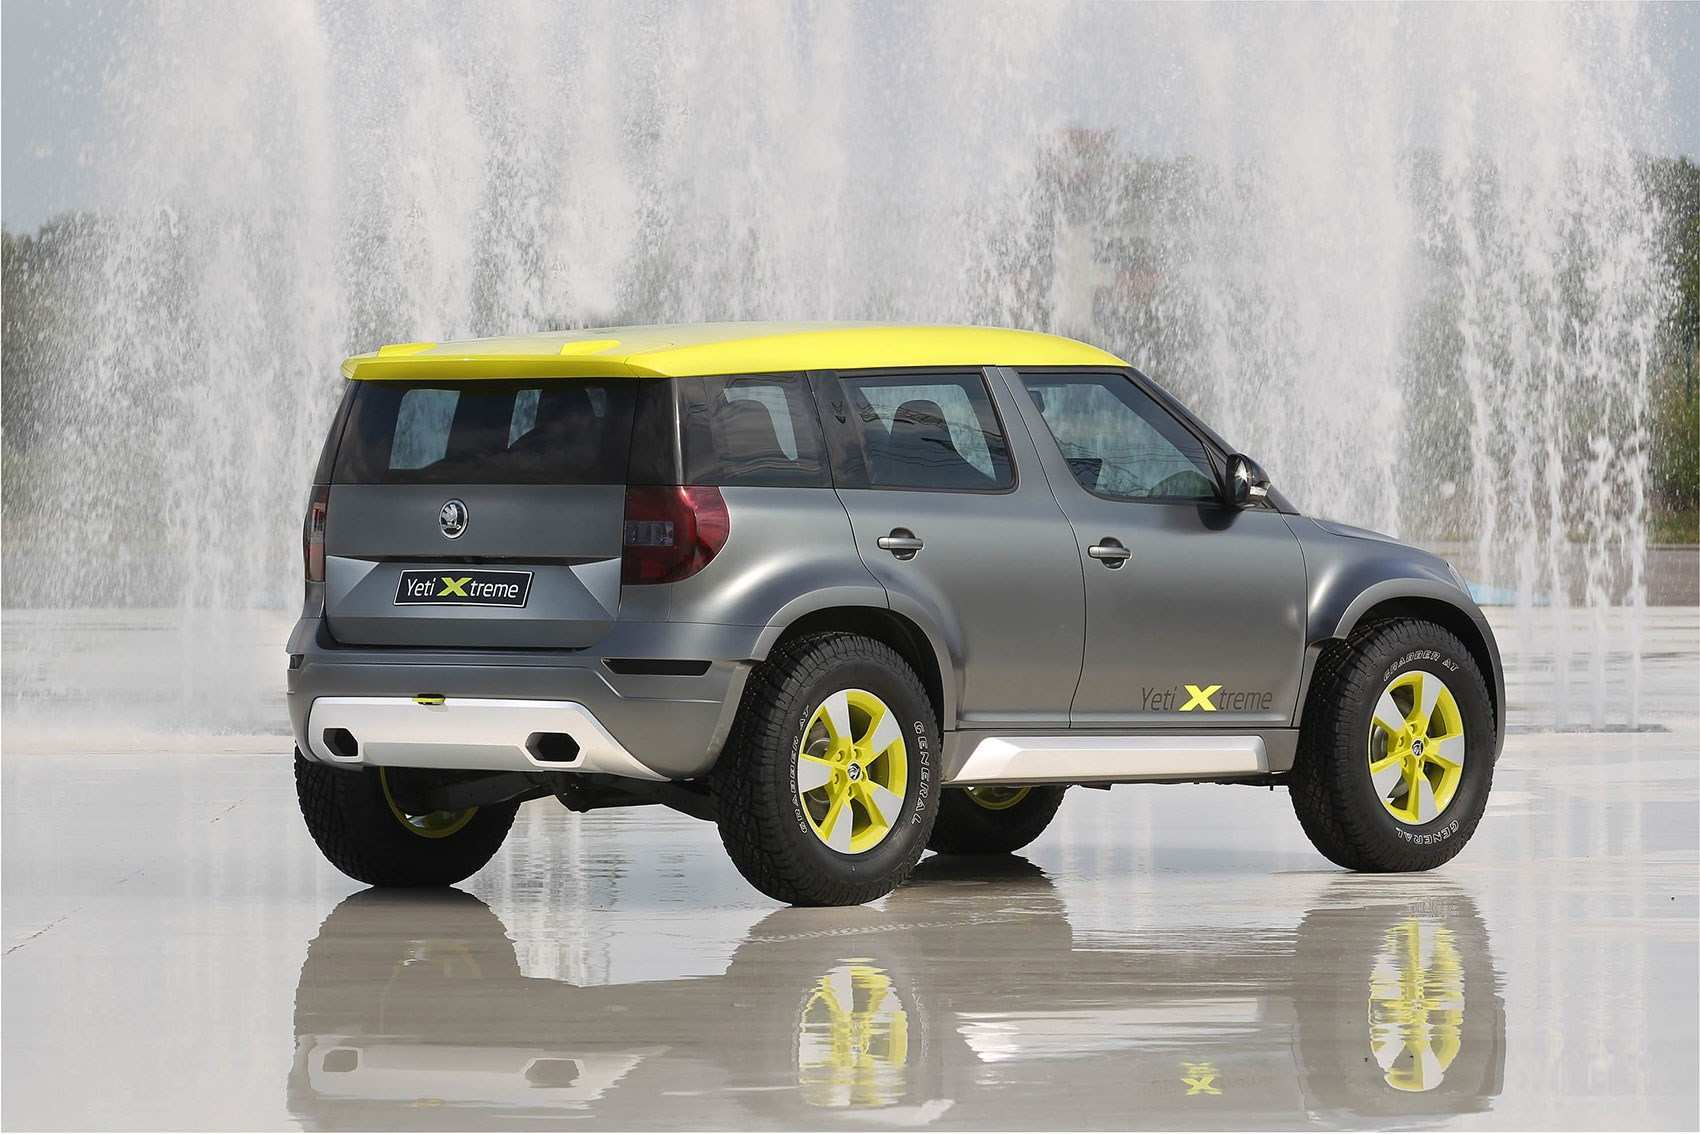 36 Concept of 2020 Skoda Yeti New Concept with 2020 Skoda Yeti